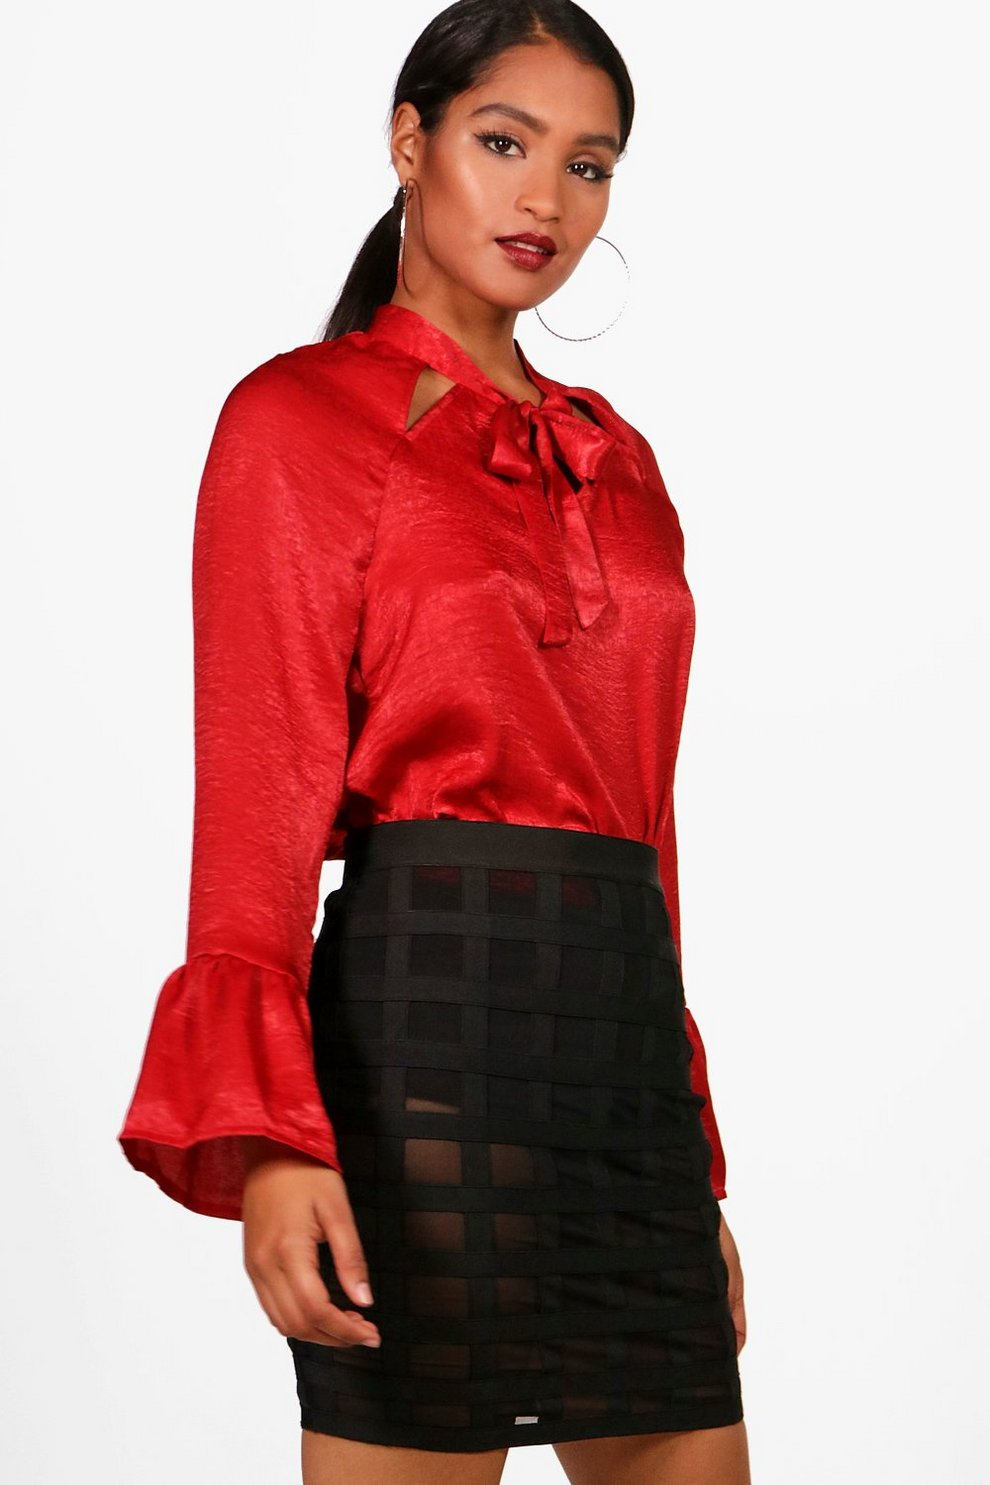 Boohoo Satin Laser Cut Tie Blouse Free Shipping Browse Cheap Latest Sale Best Prices Cheap Sale Official wrYEVvnZ